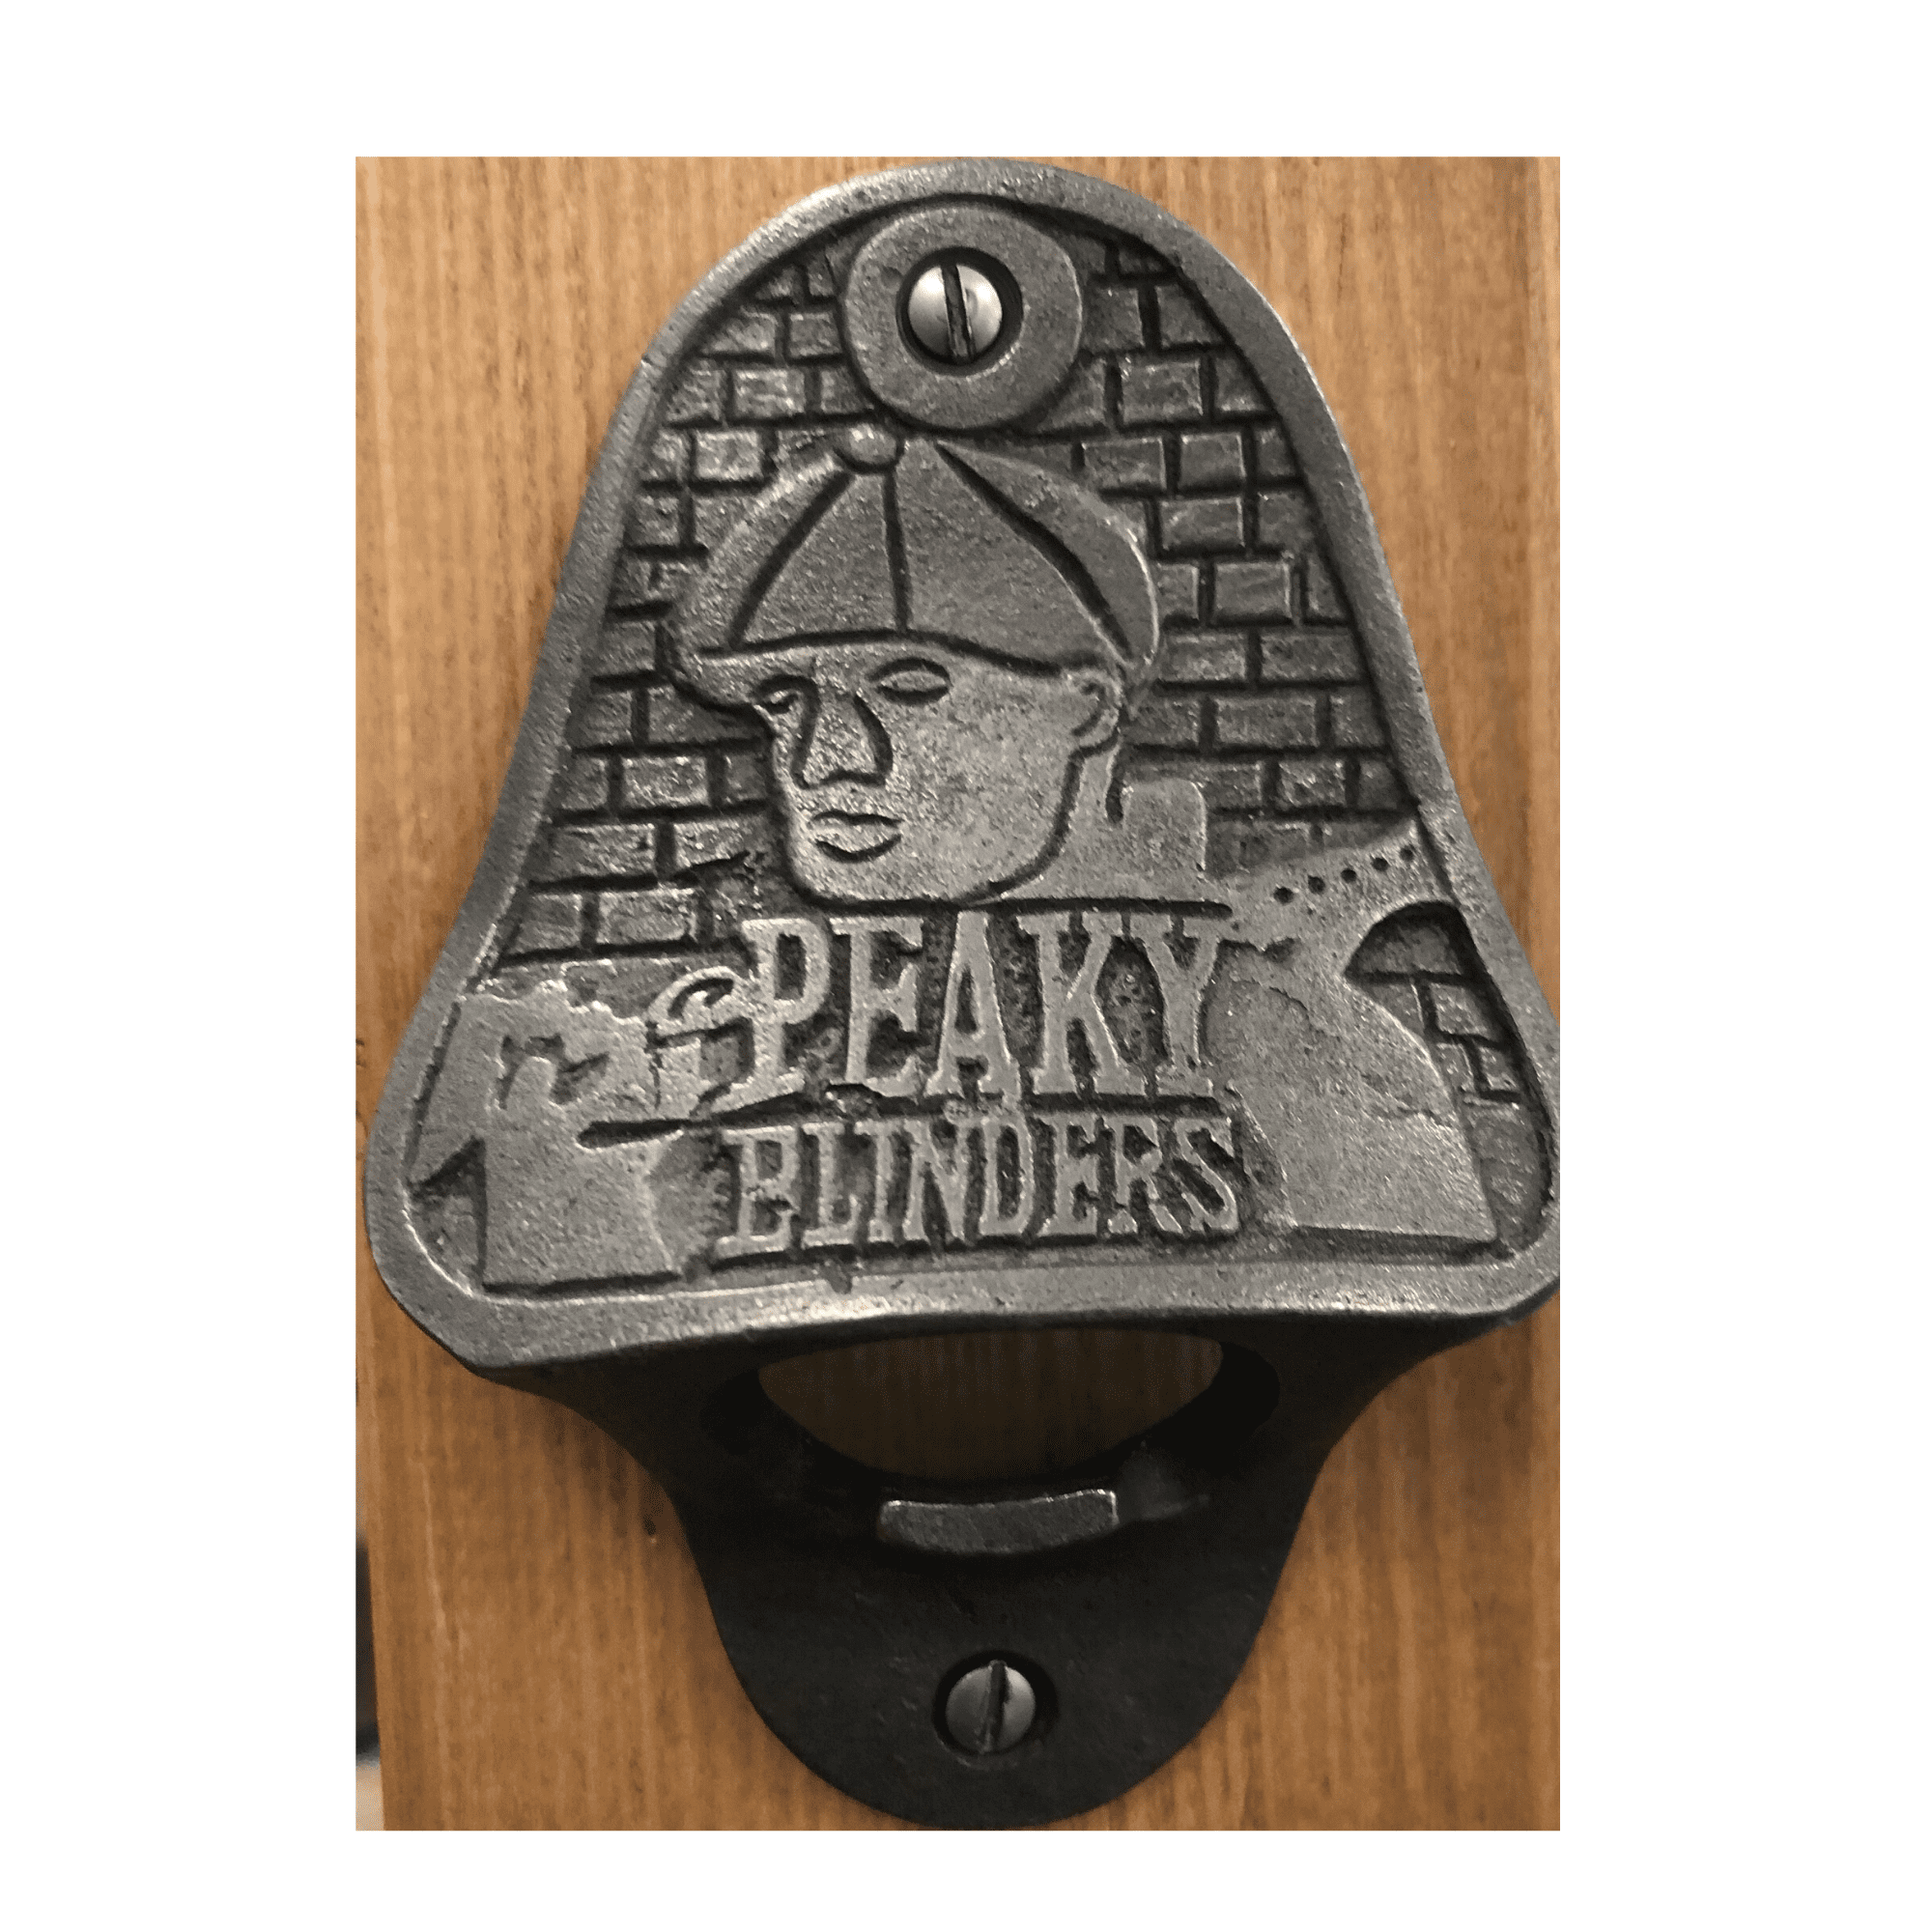 Peaky blinder iron Bottle opener